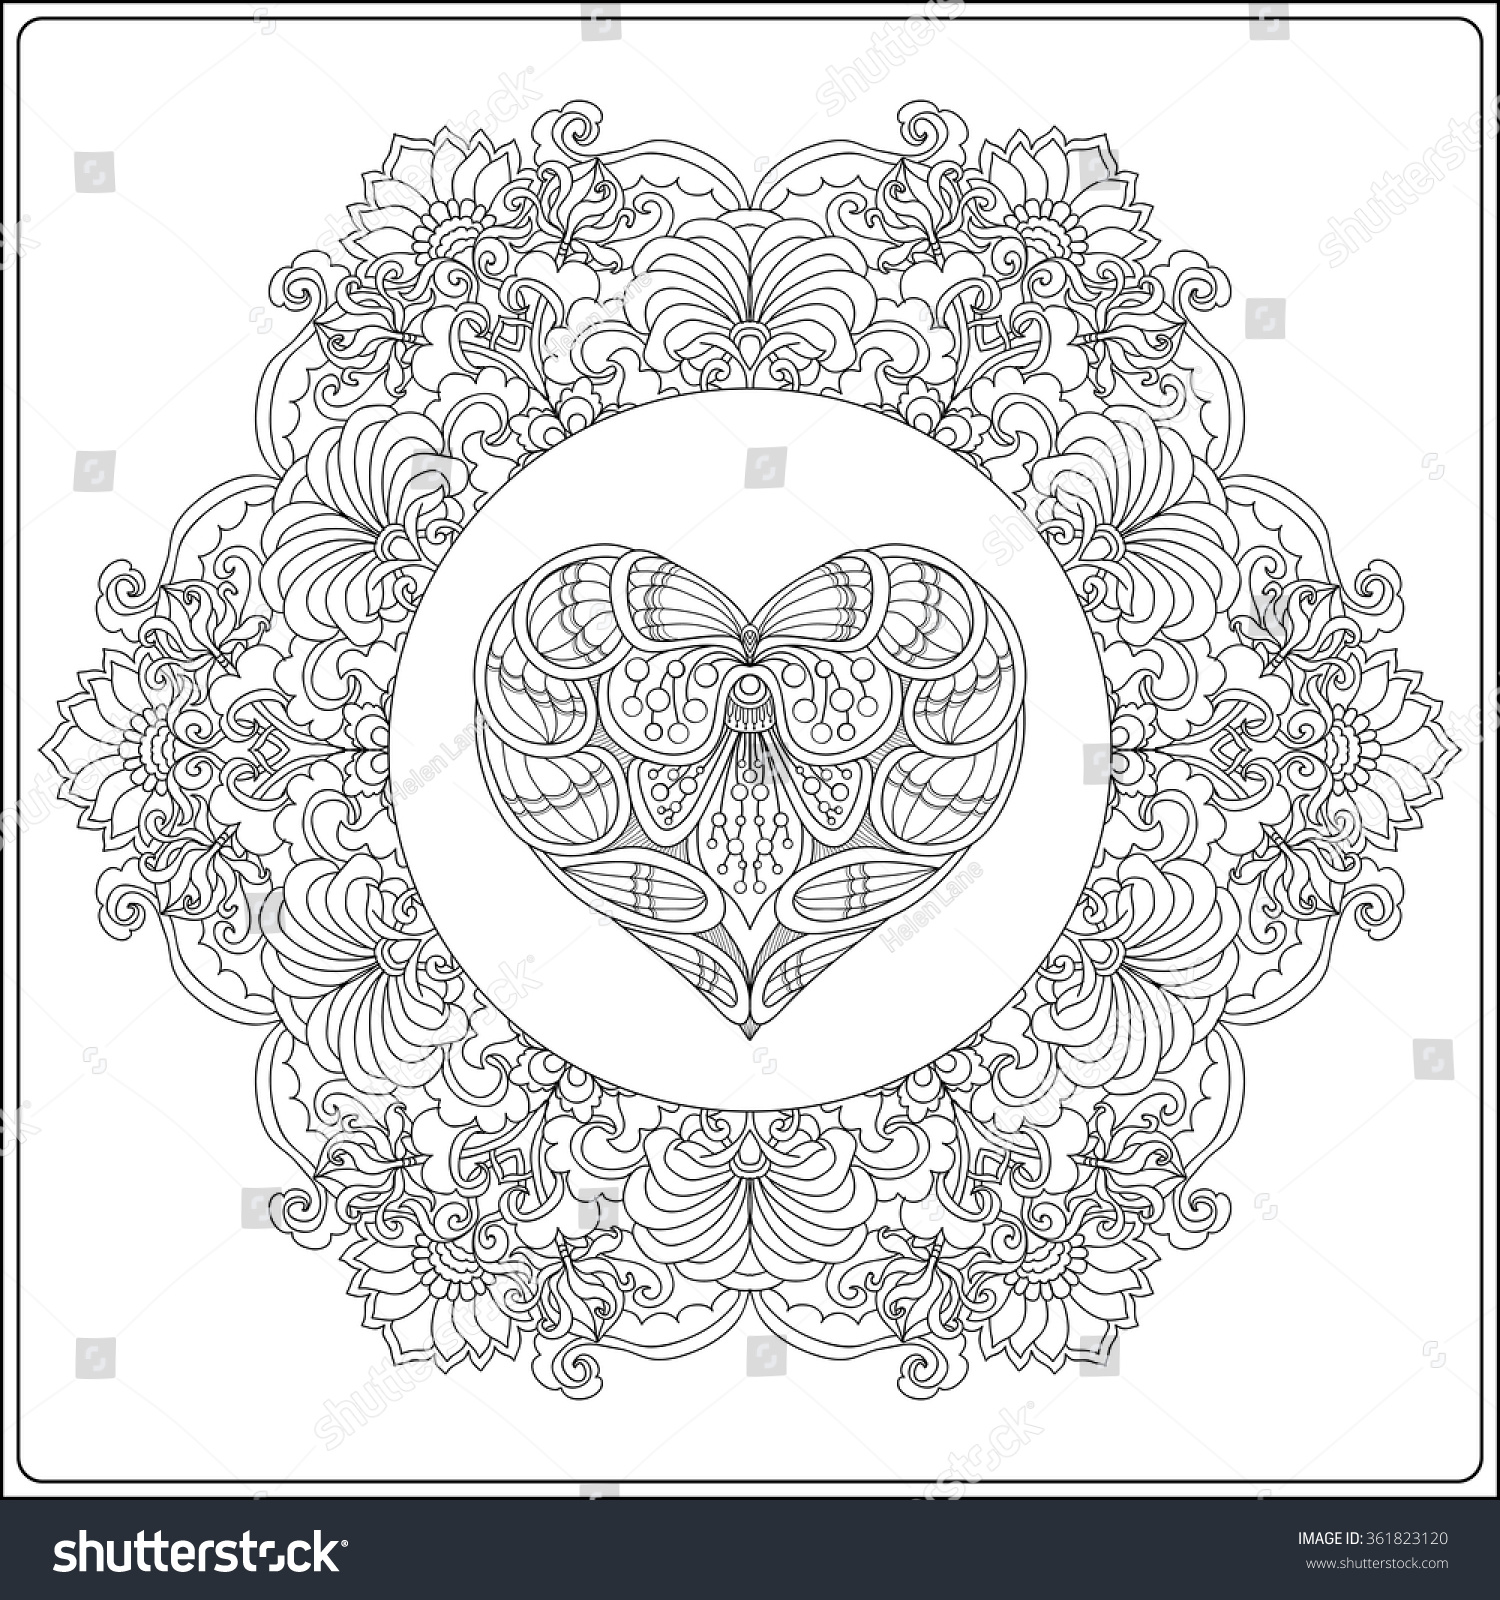 Valentines day mandala coloring pages - Hand Drawn Floral Mandala With Butterflies And Decorative Love Heart For Valentine S Day